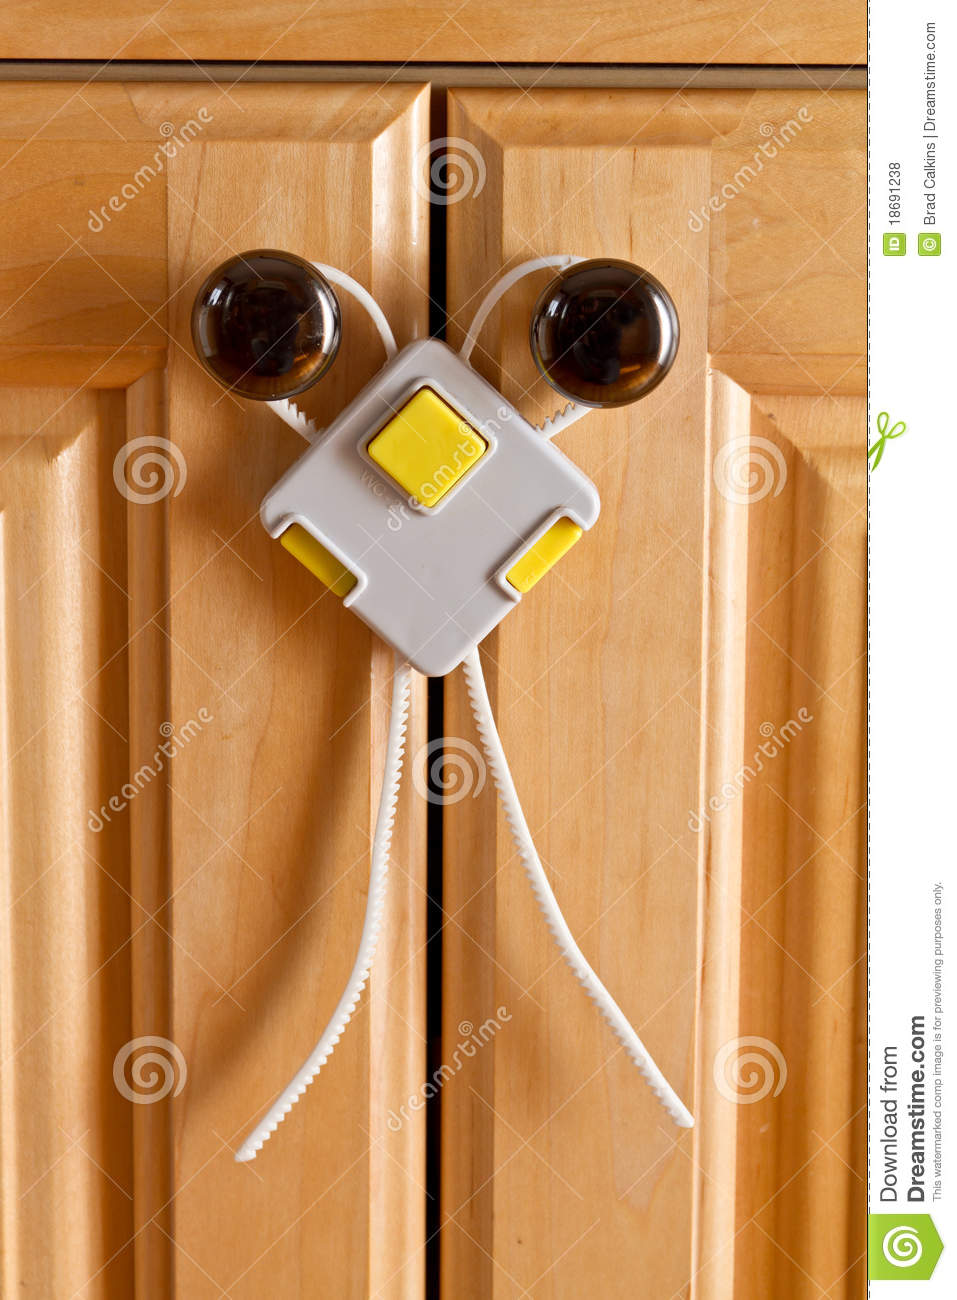 Child proof locks for doors - Childproof Lock Royalty Free Stock Photos Image 18691238